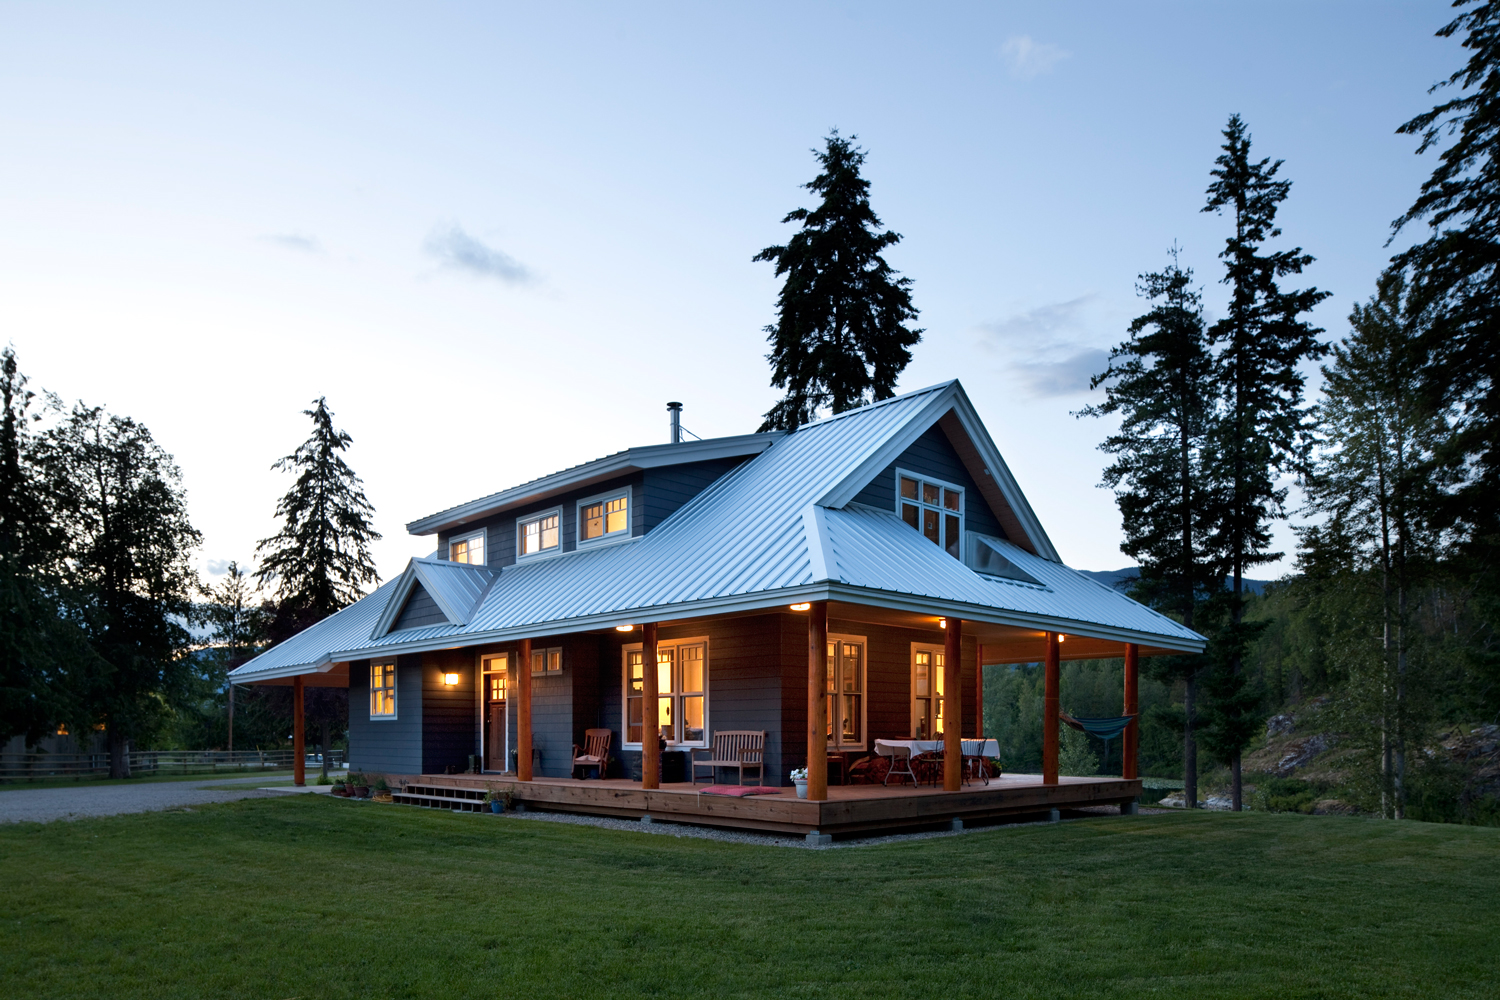 Mountain home revelstoke bc john gower design for The mountain house